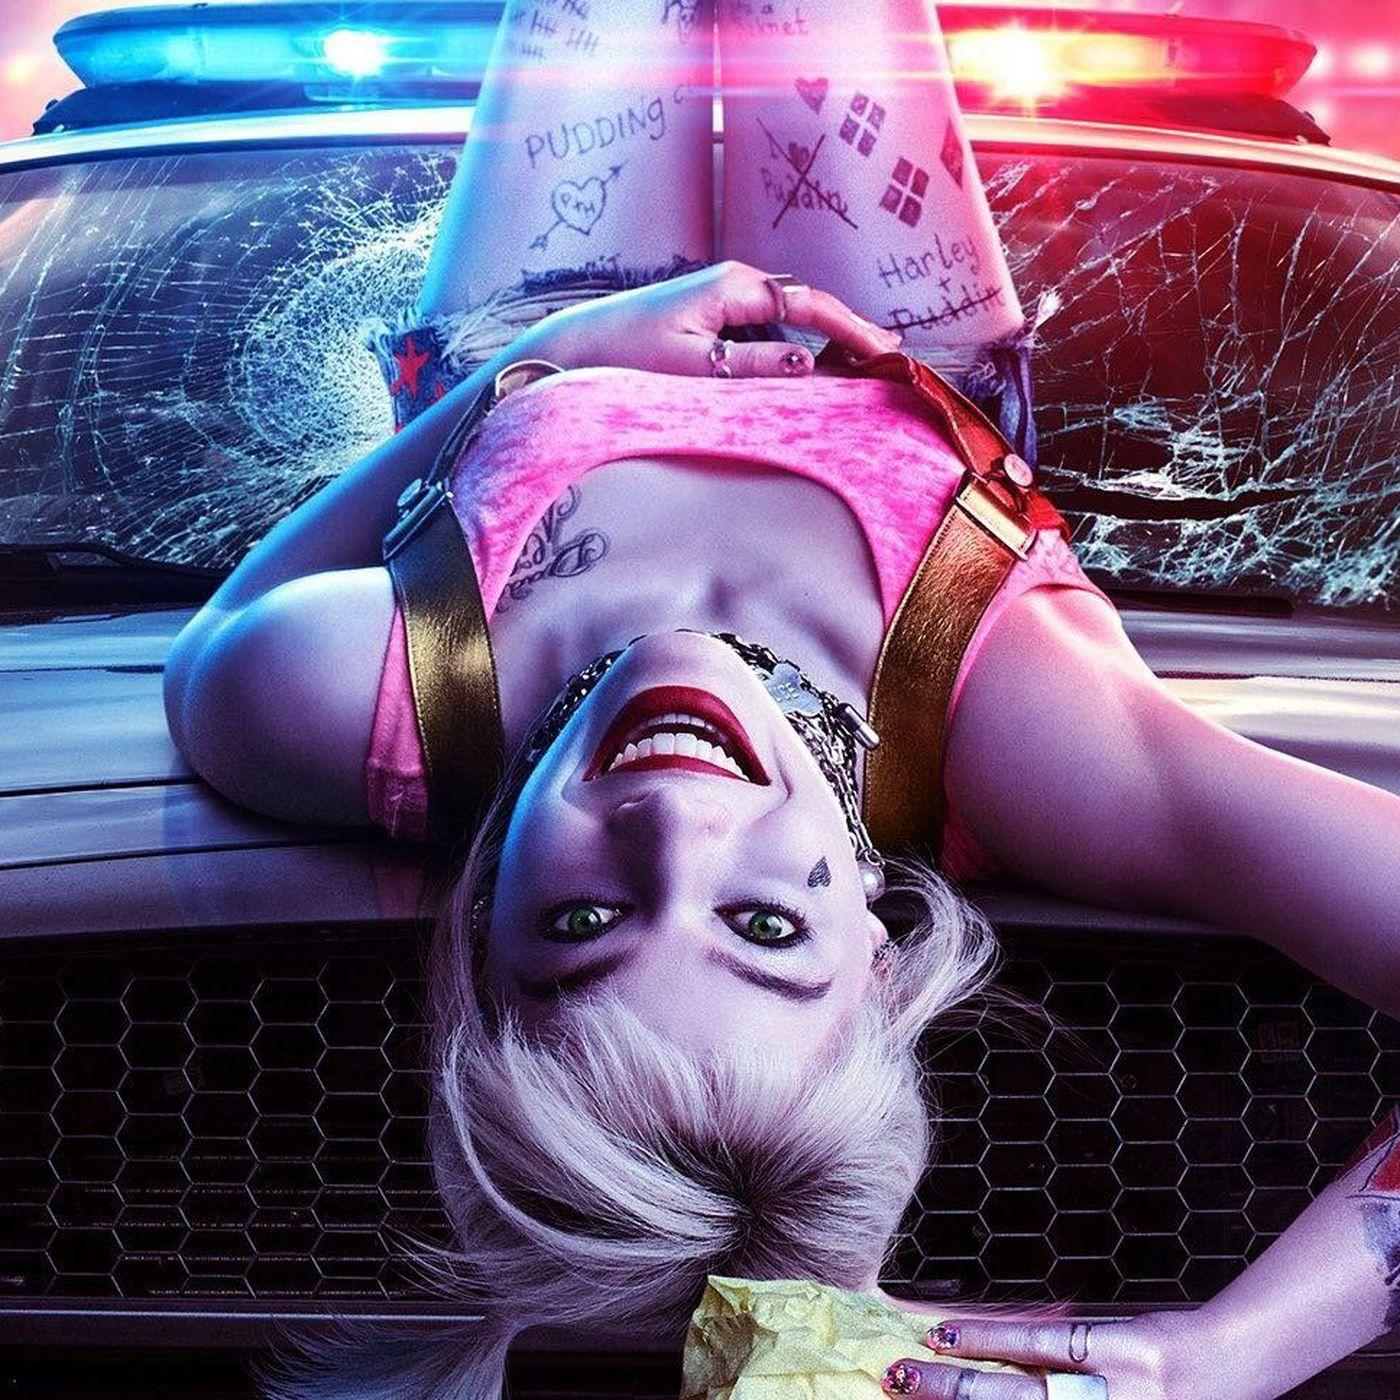 Birds of Prey (And the Fantabulous Emancipation of One Harley Quinn) film